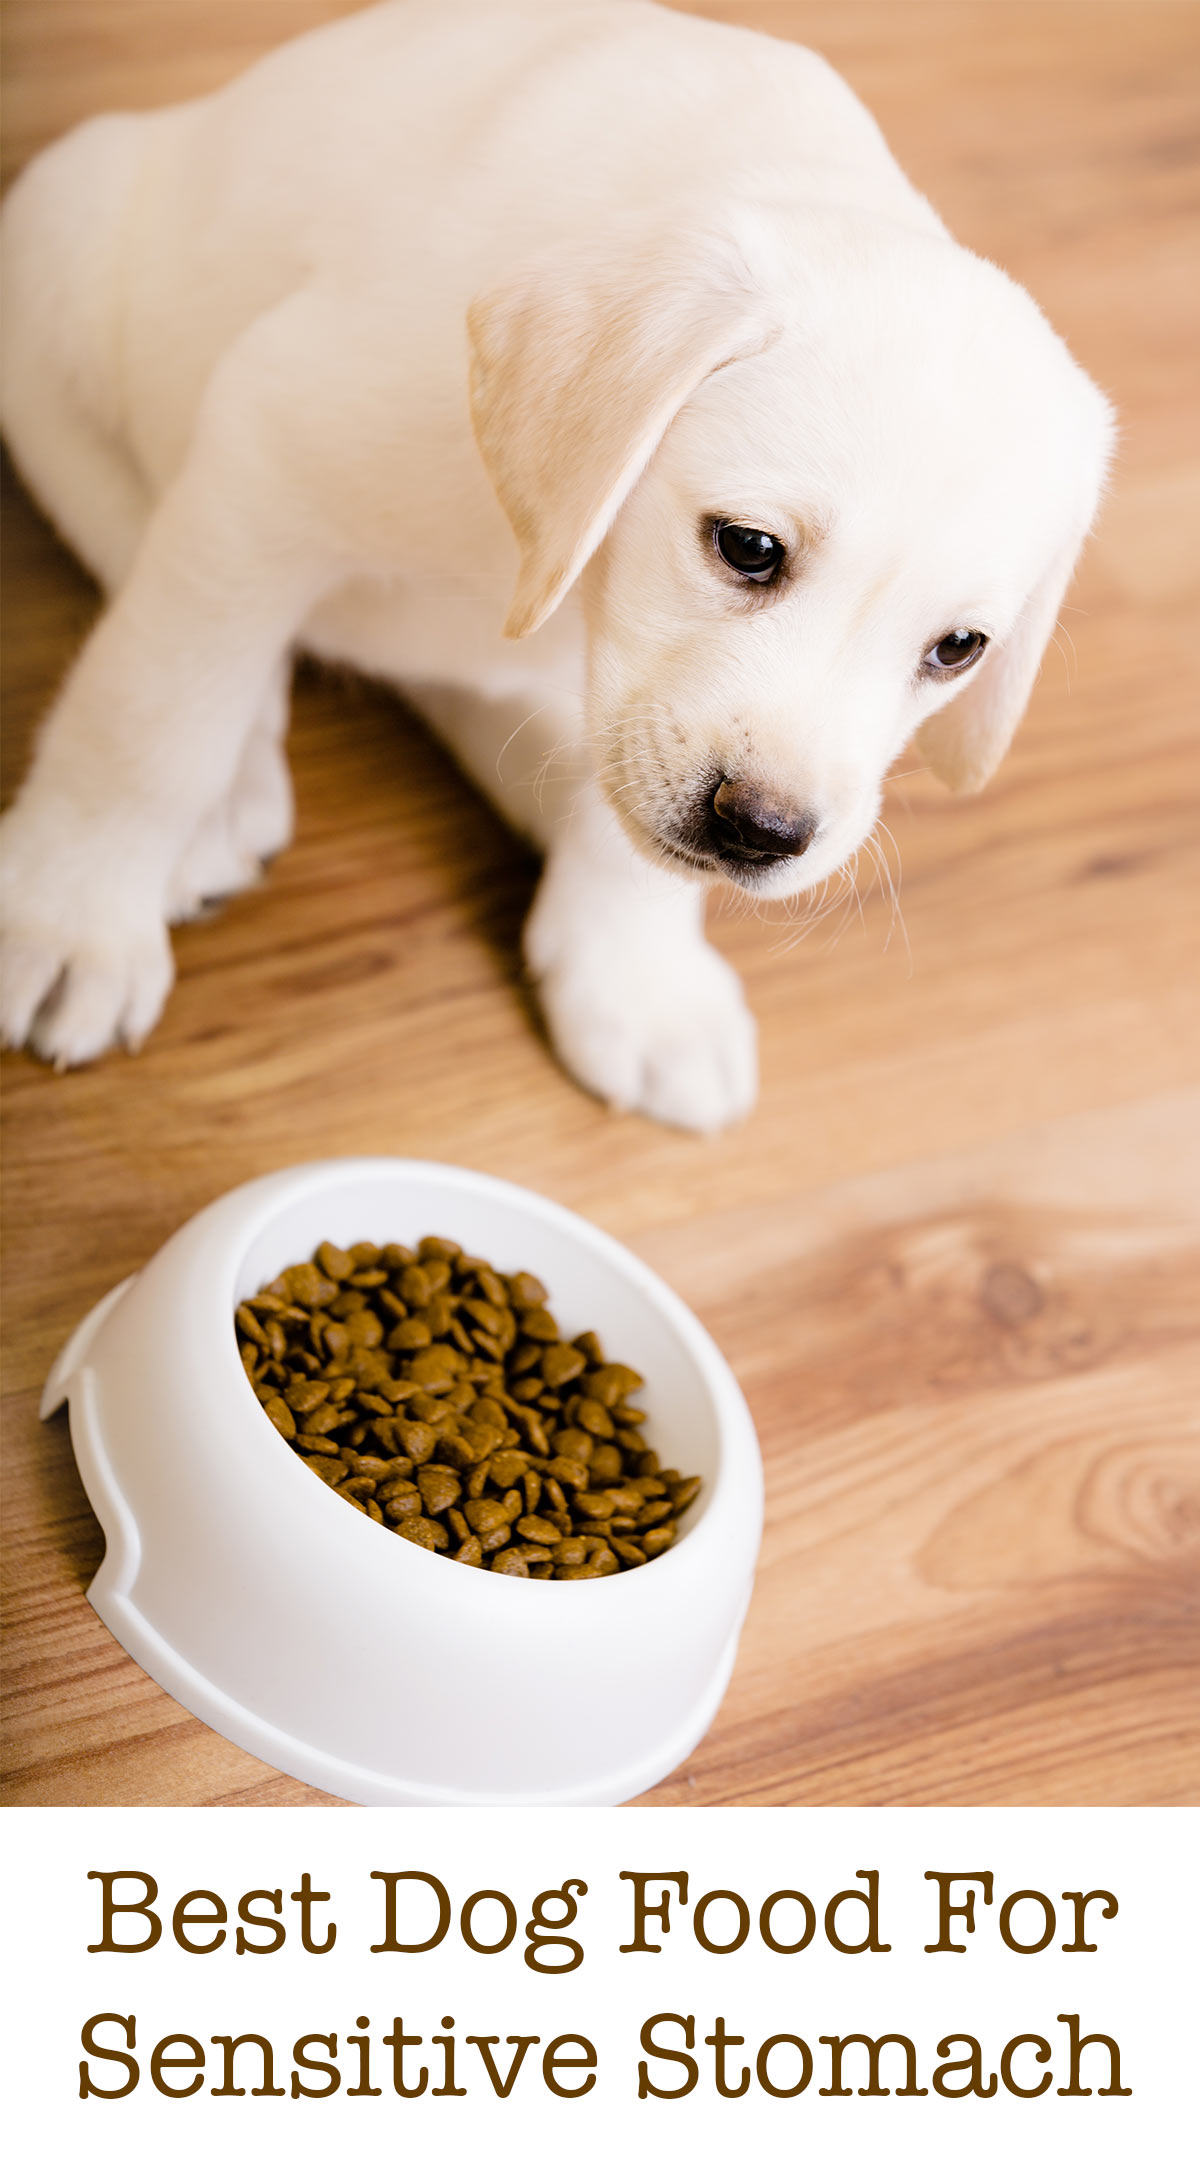 Best Food For A Puppy With A Sensitive Stomach